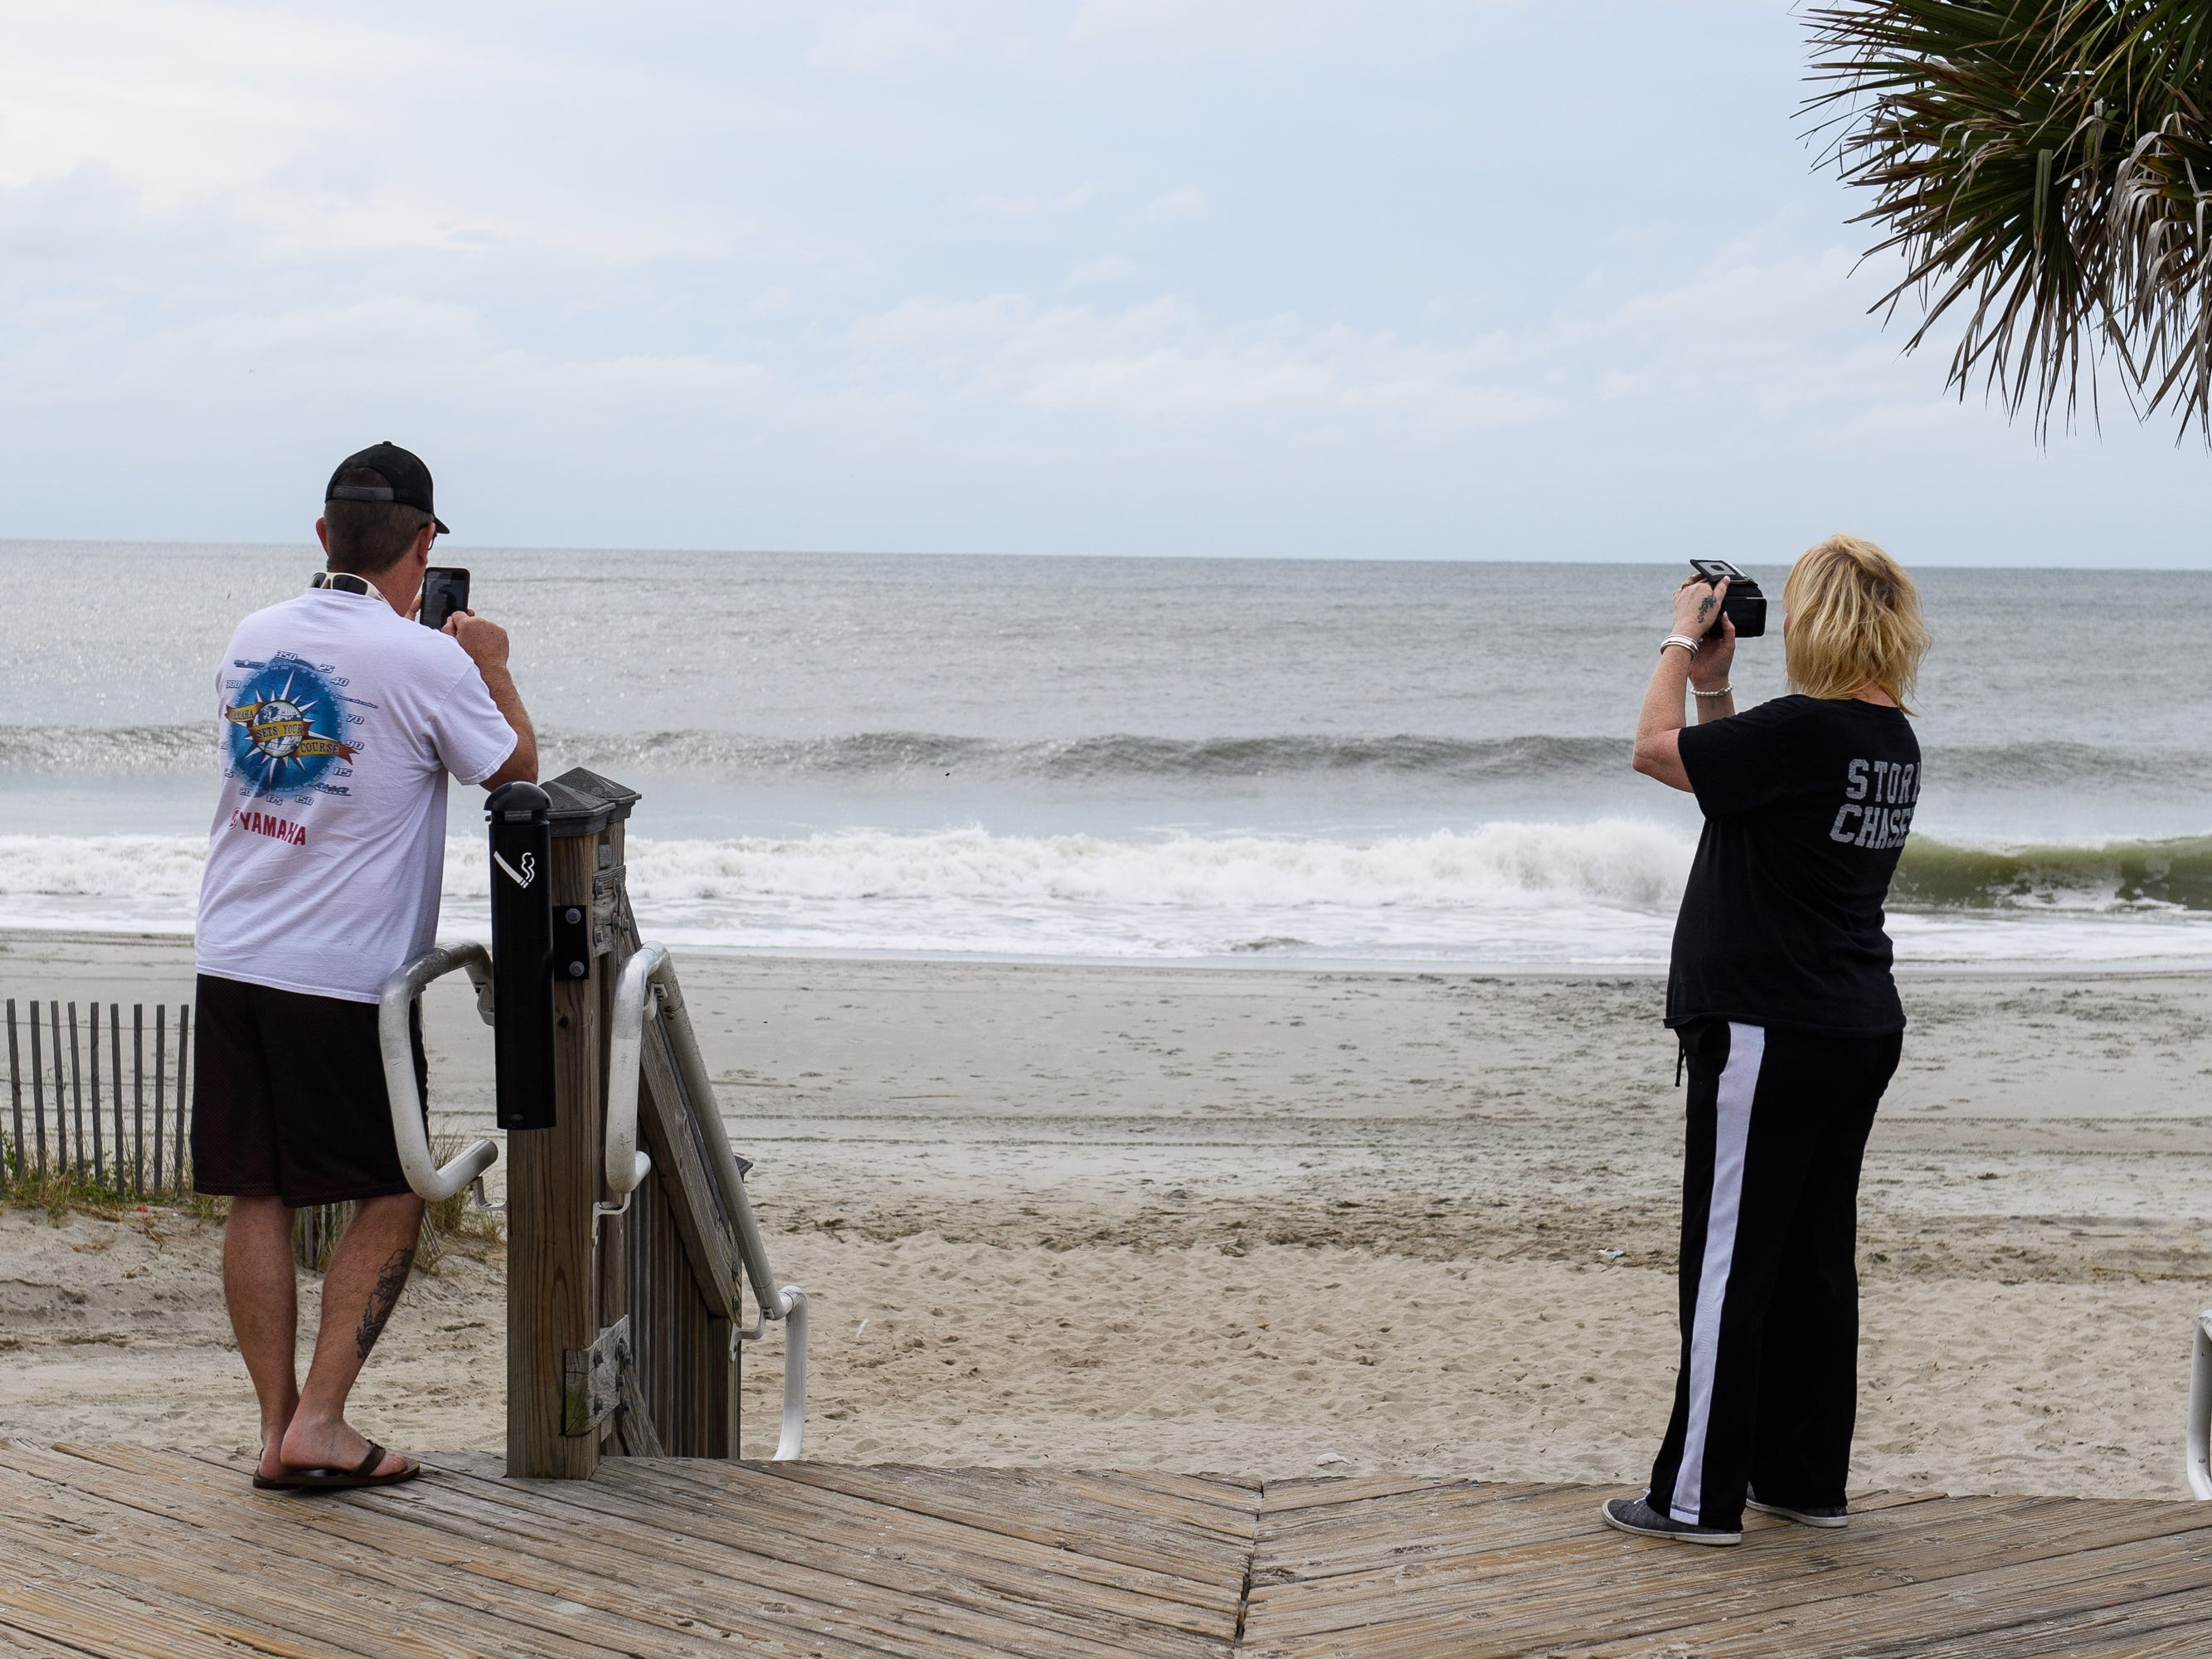 Stormy Walls and her husband Rick take photographs of the beach at the Myrtle Beach Boardwalk and Promenade on Thursday, Sept. 13, 2018.